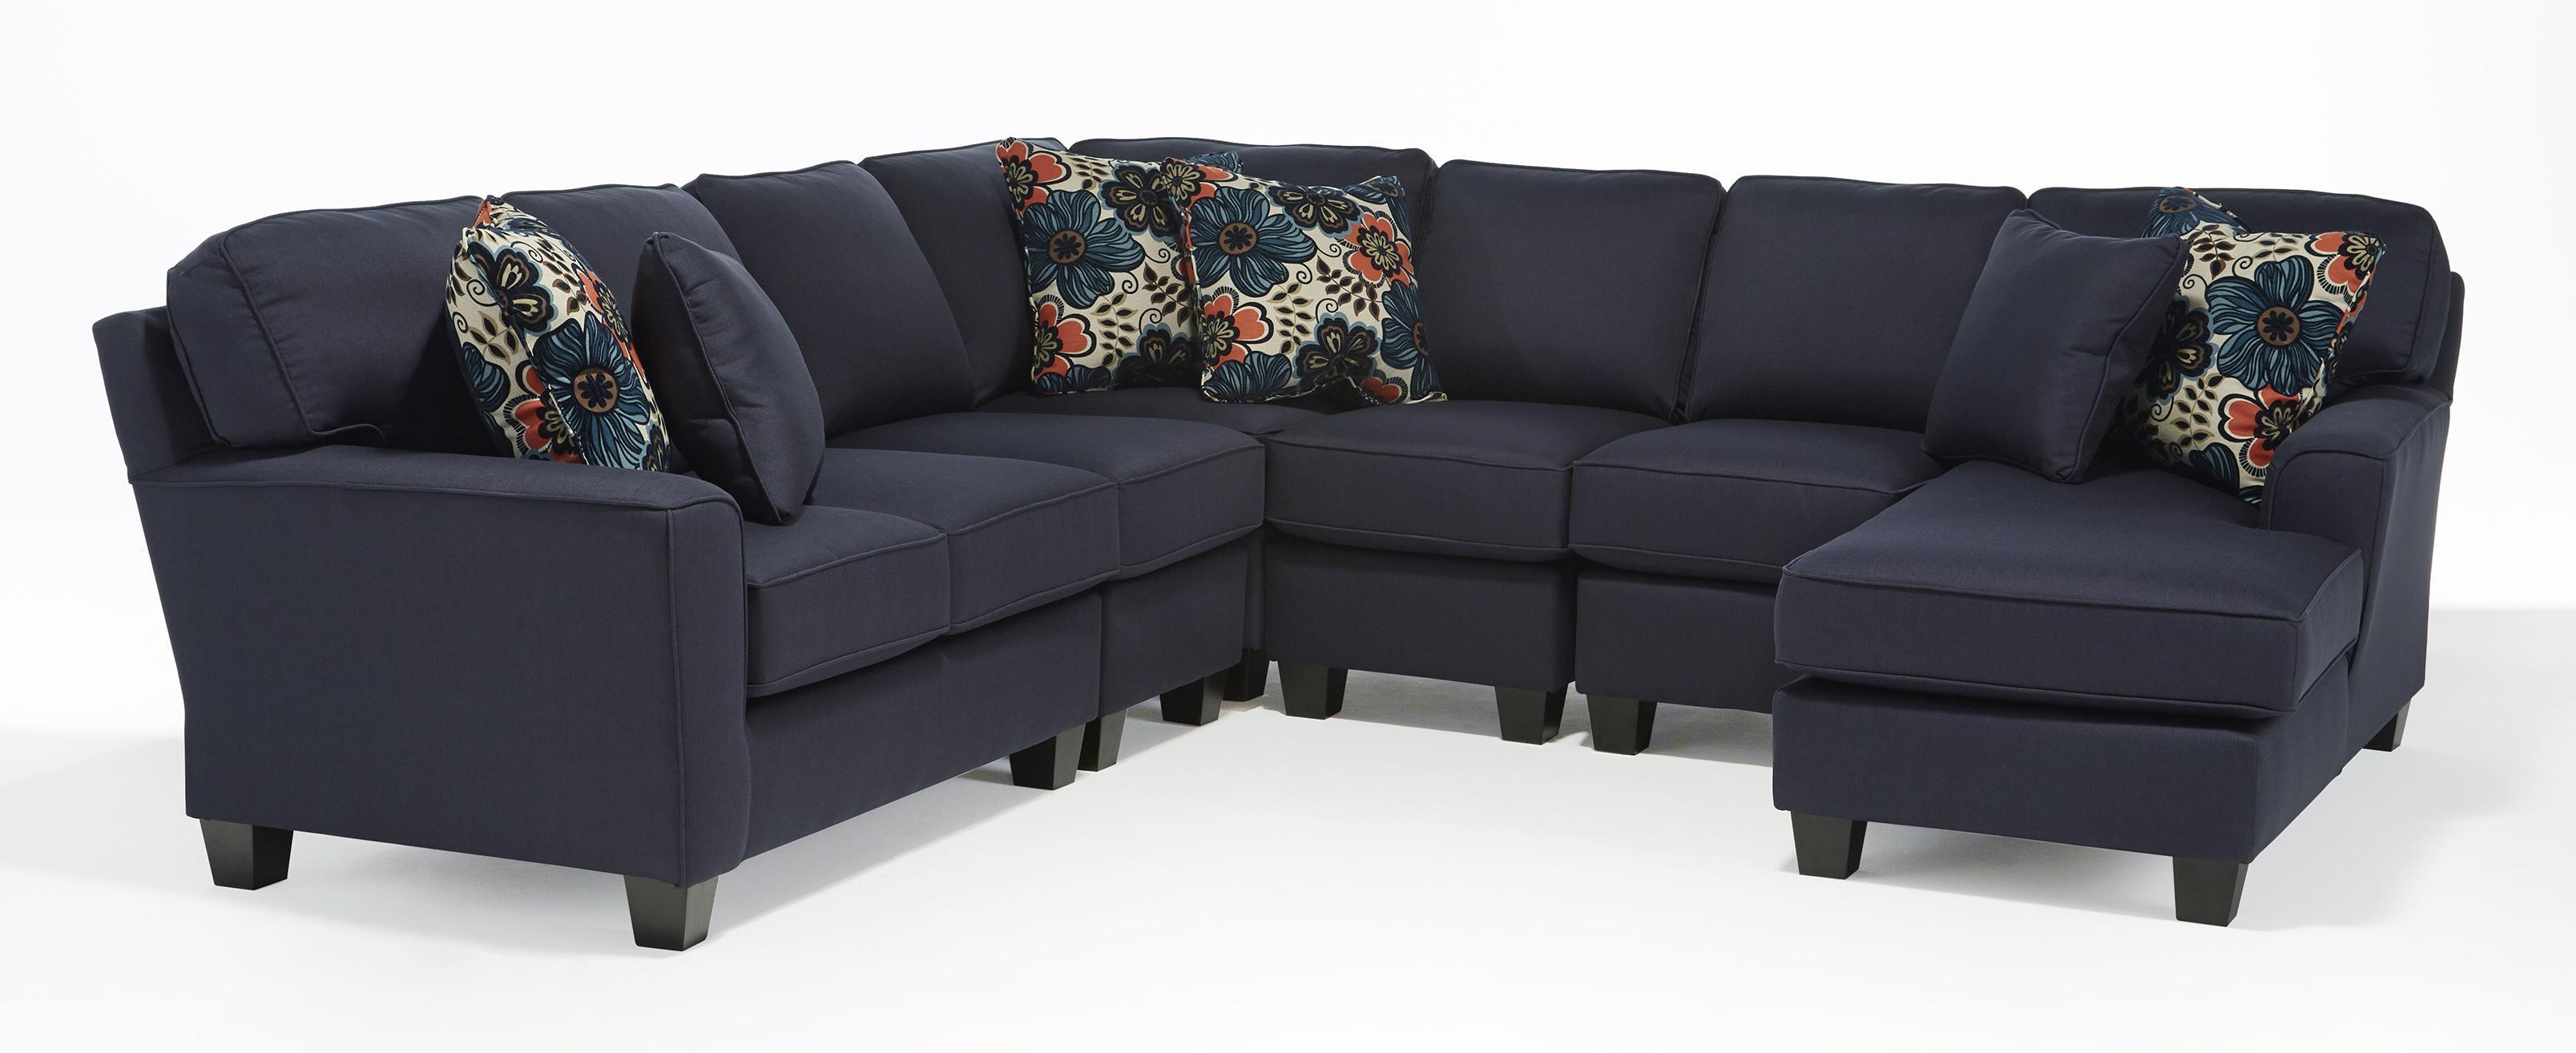 Five Piece Customizable Sectional Sofa With Beveled Arms And Wood Throughout Customized Sofas (Image 14 of 20)